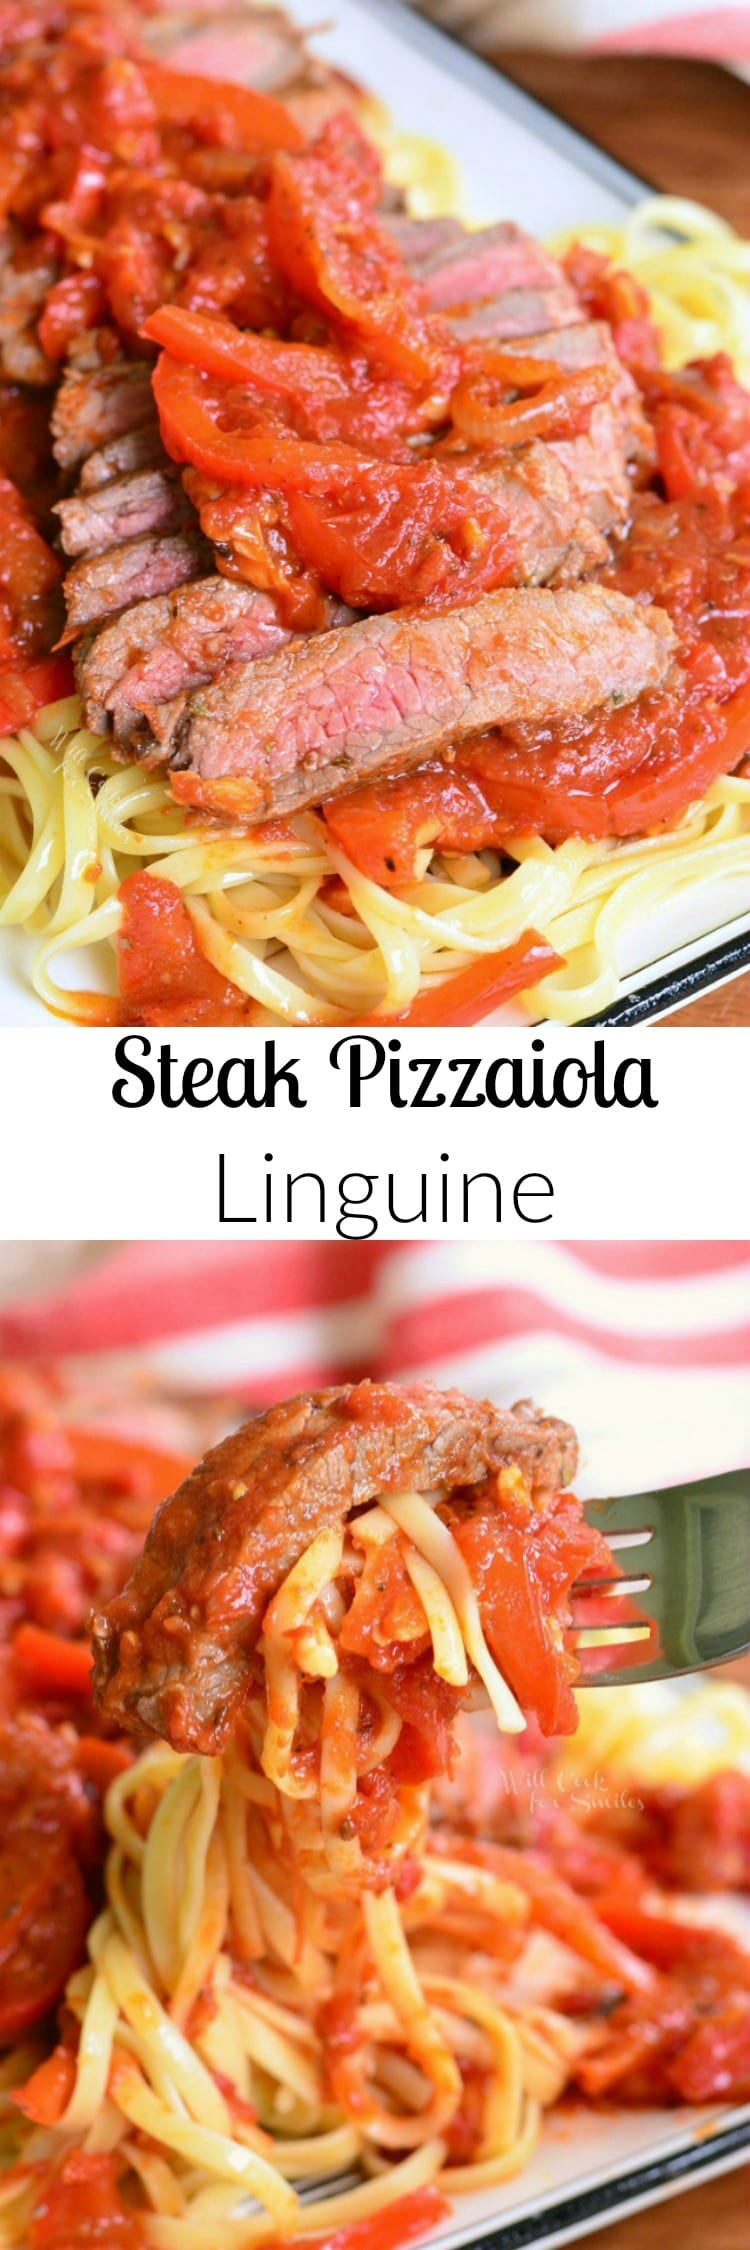 Steak Pizzaiola Linguine. Delicious Italian dish made with seared tender sirloin steak, easy pizzaiola sauce (tomato sauce), and served over linguine.